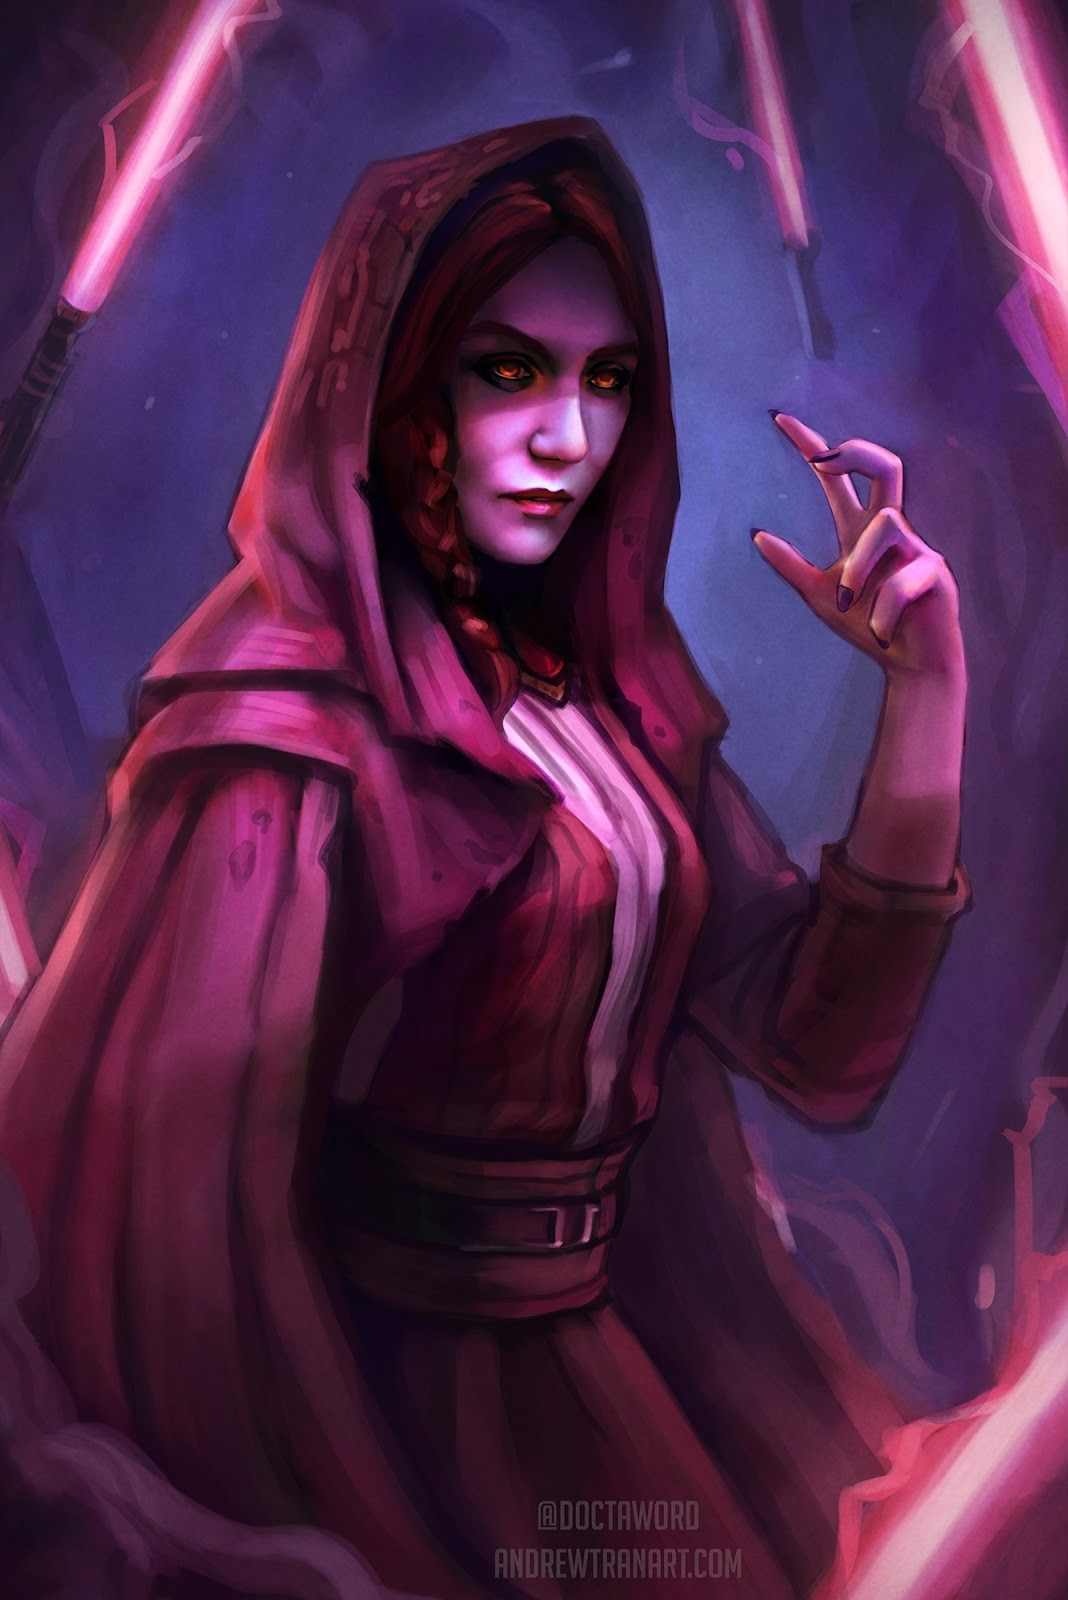 05-Melisandre-Carice-van-Houten-Andrew-D-Tran-Doctaword-Star-Wars-and-Game-of-Thrones-Mashup-www-designstack-co